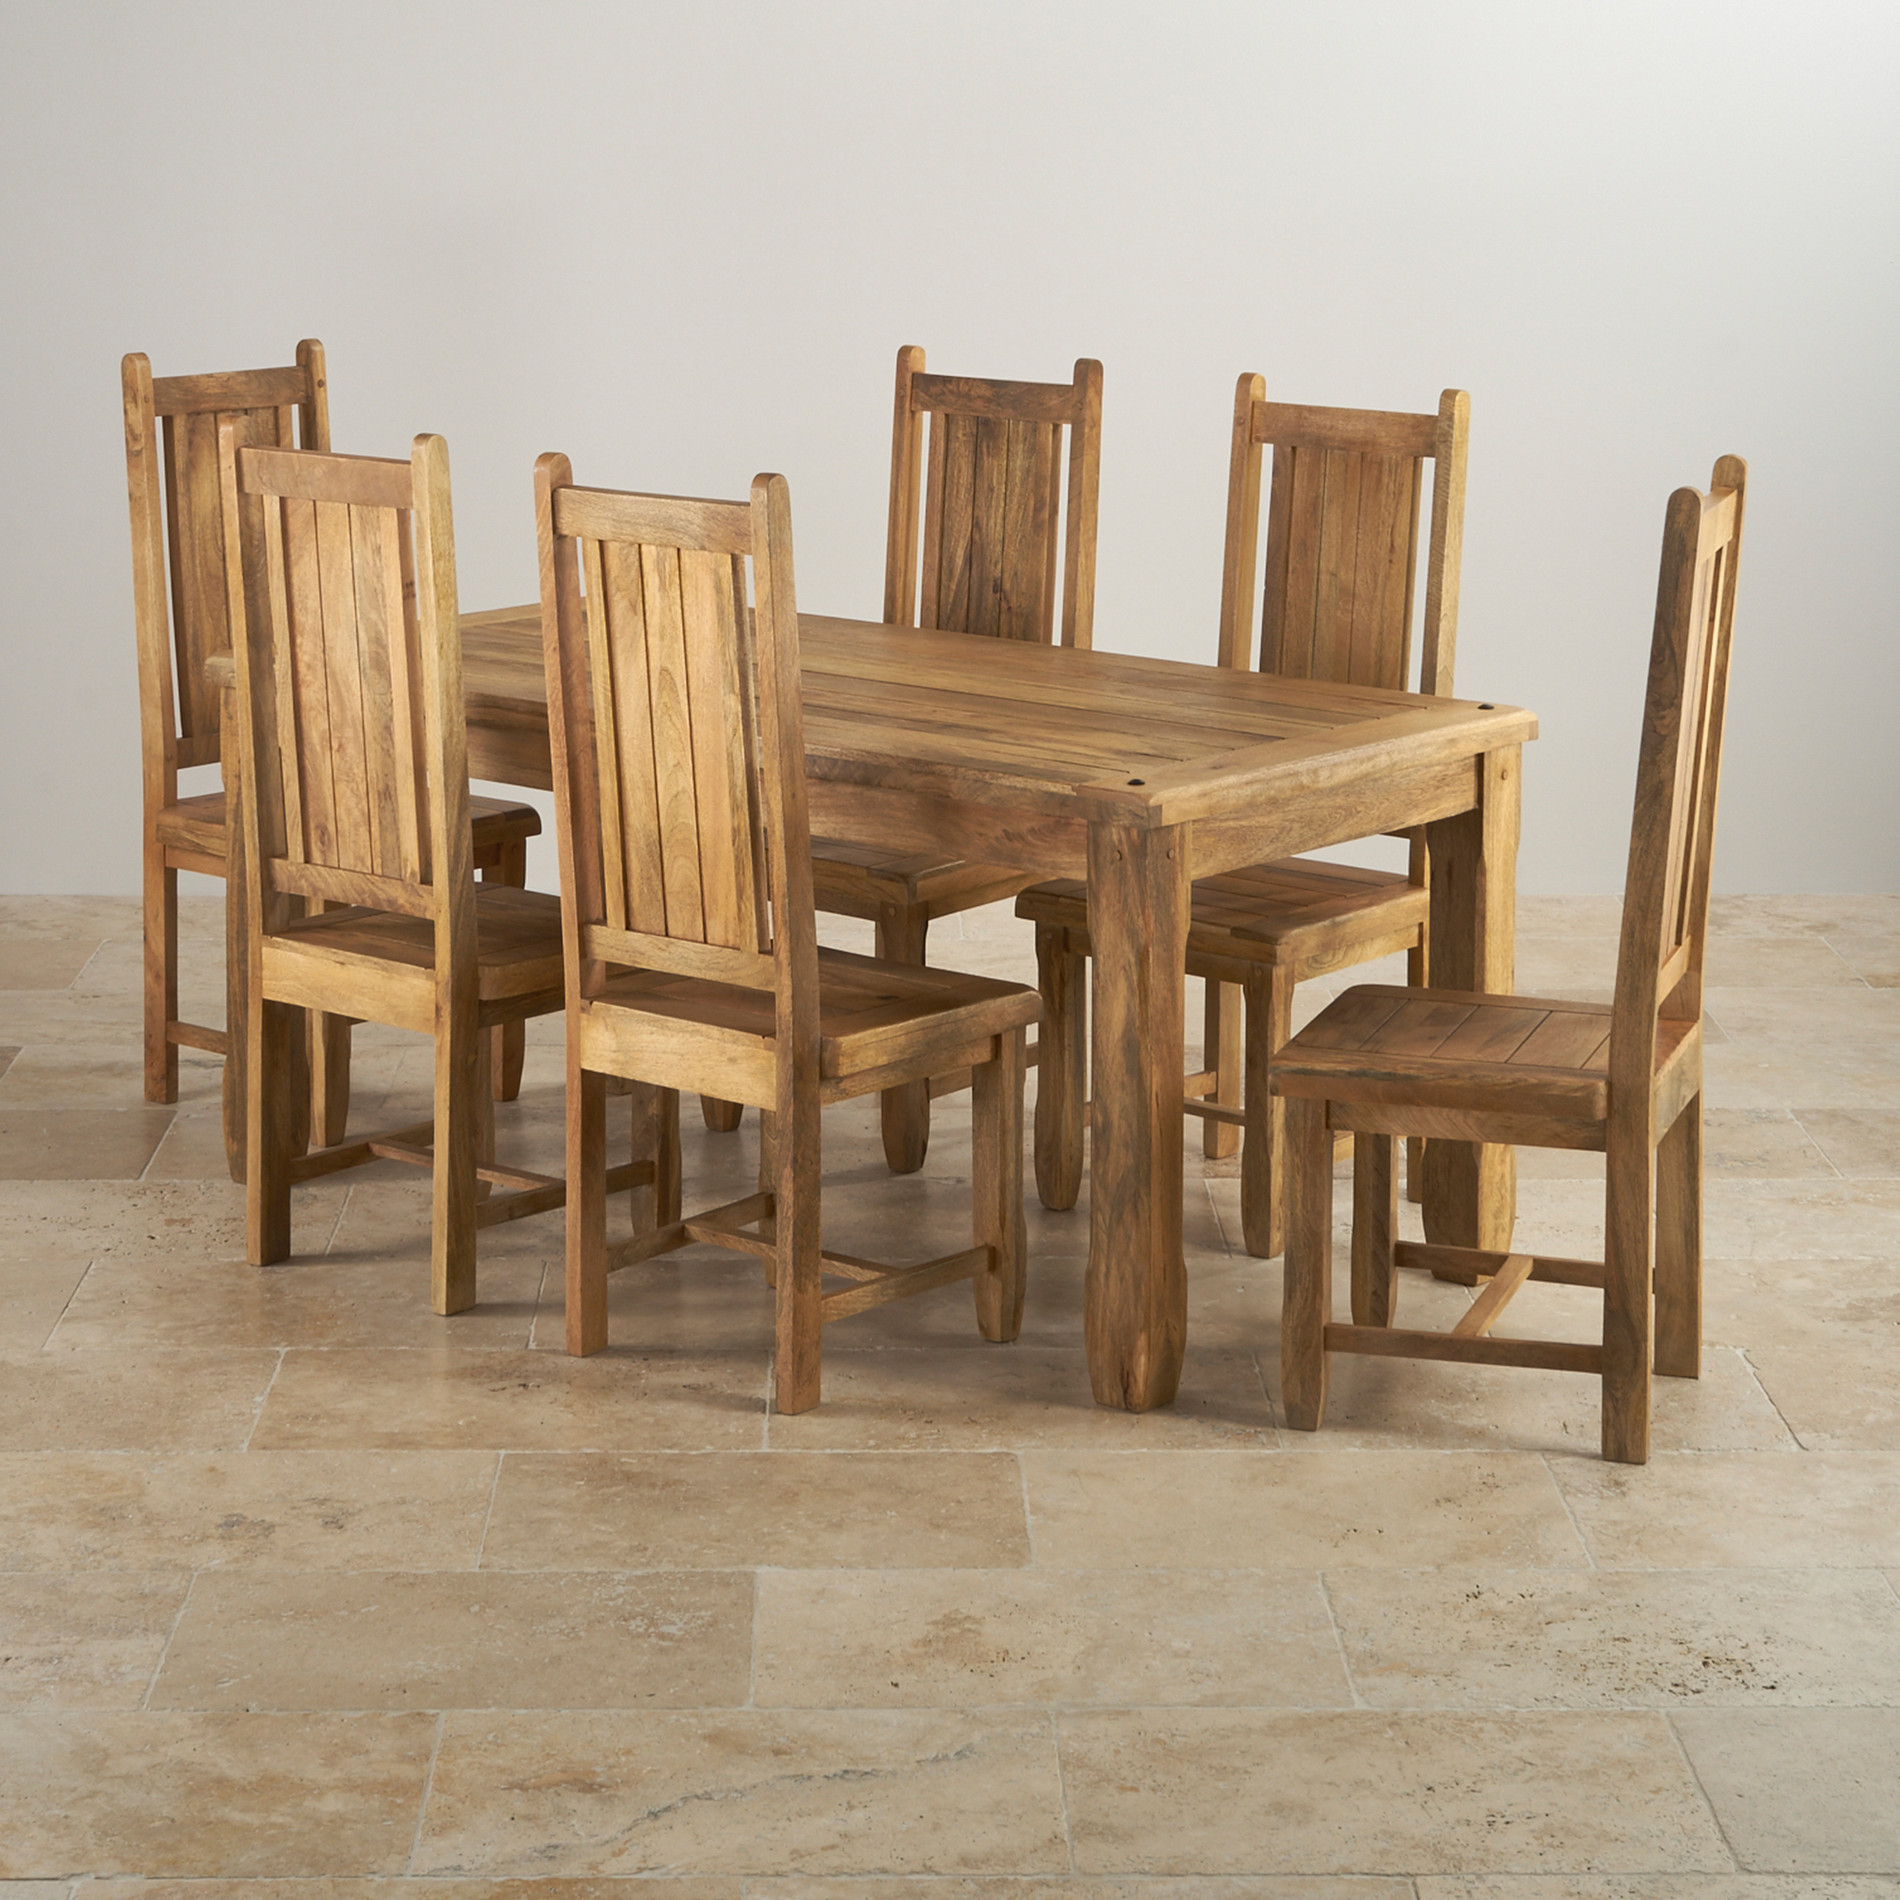 2 Chair Dining Table Baku Light Dining Table In Natural Mango 43 6 Mango Chairs